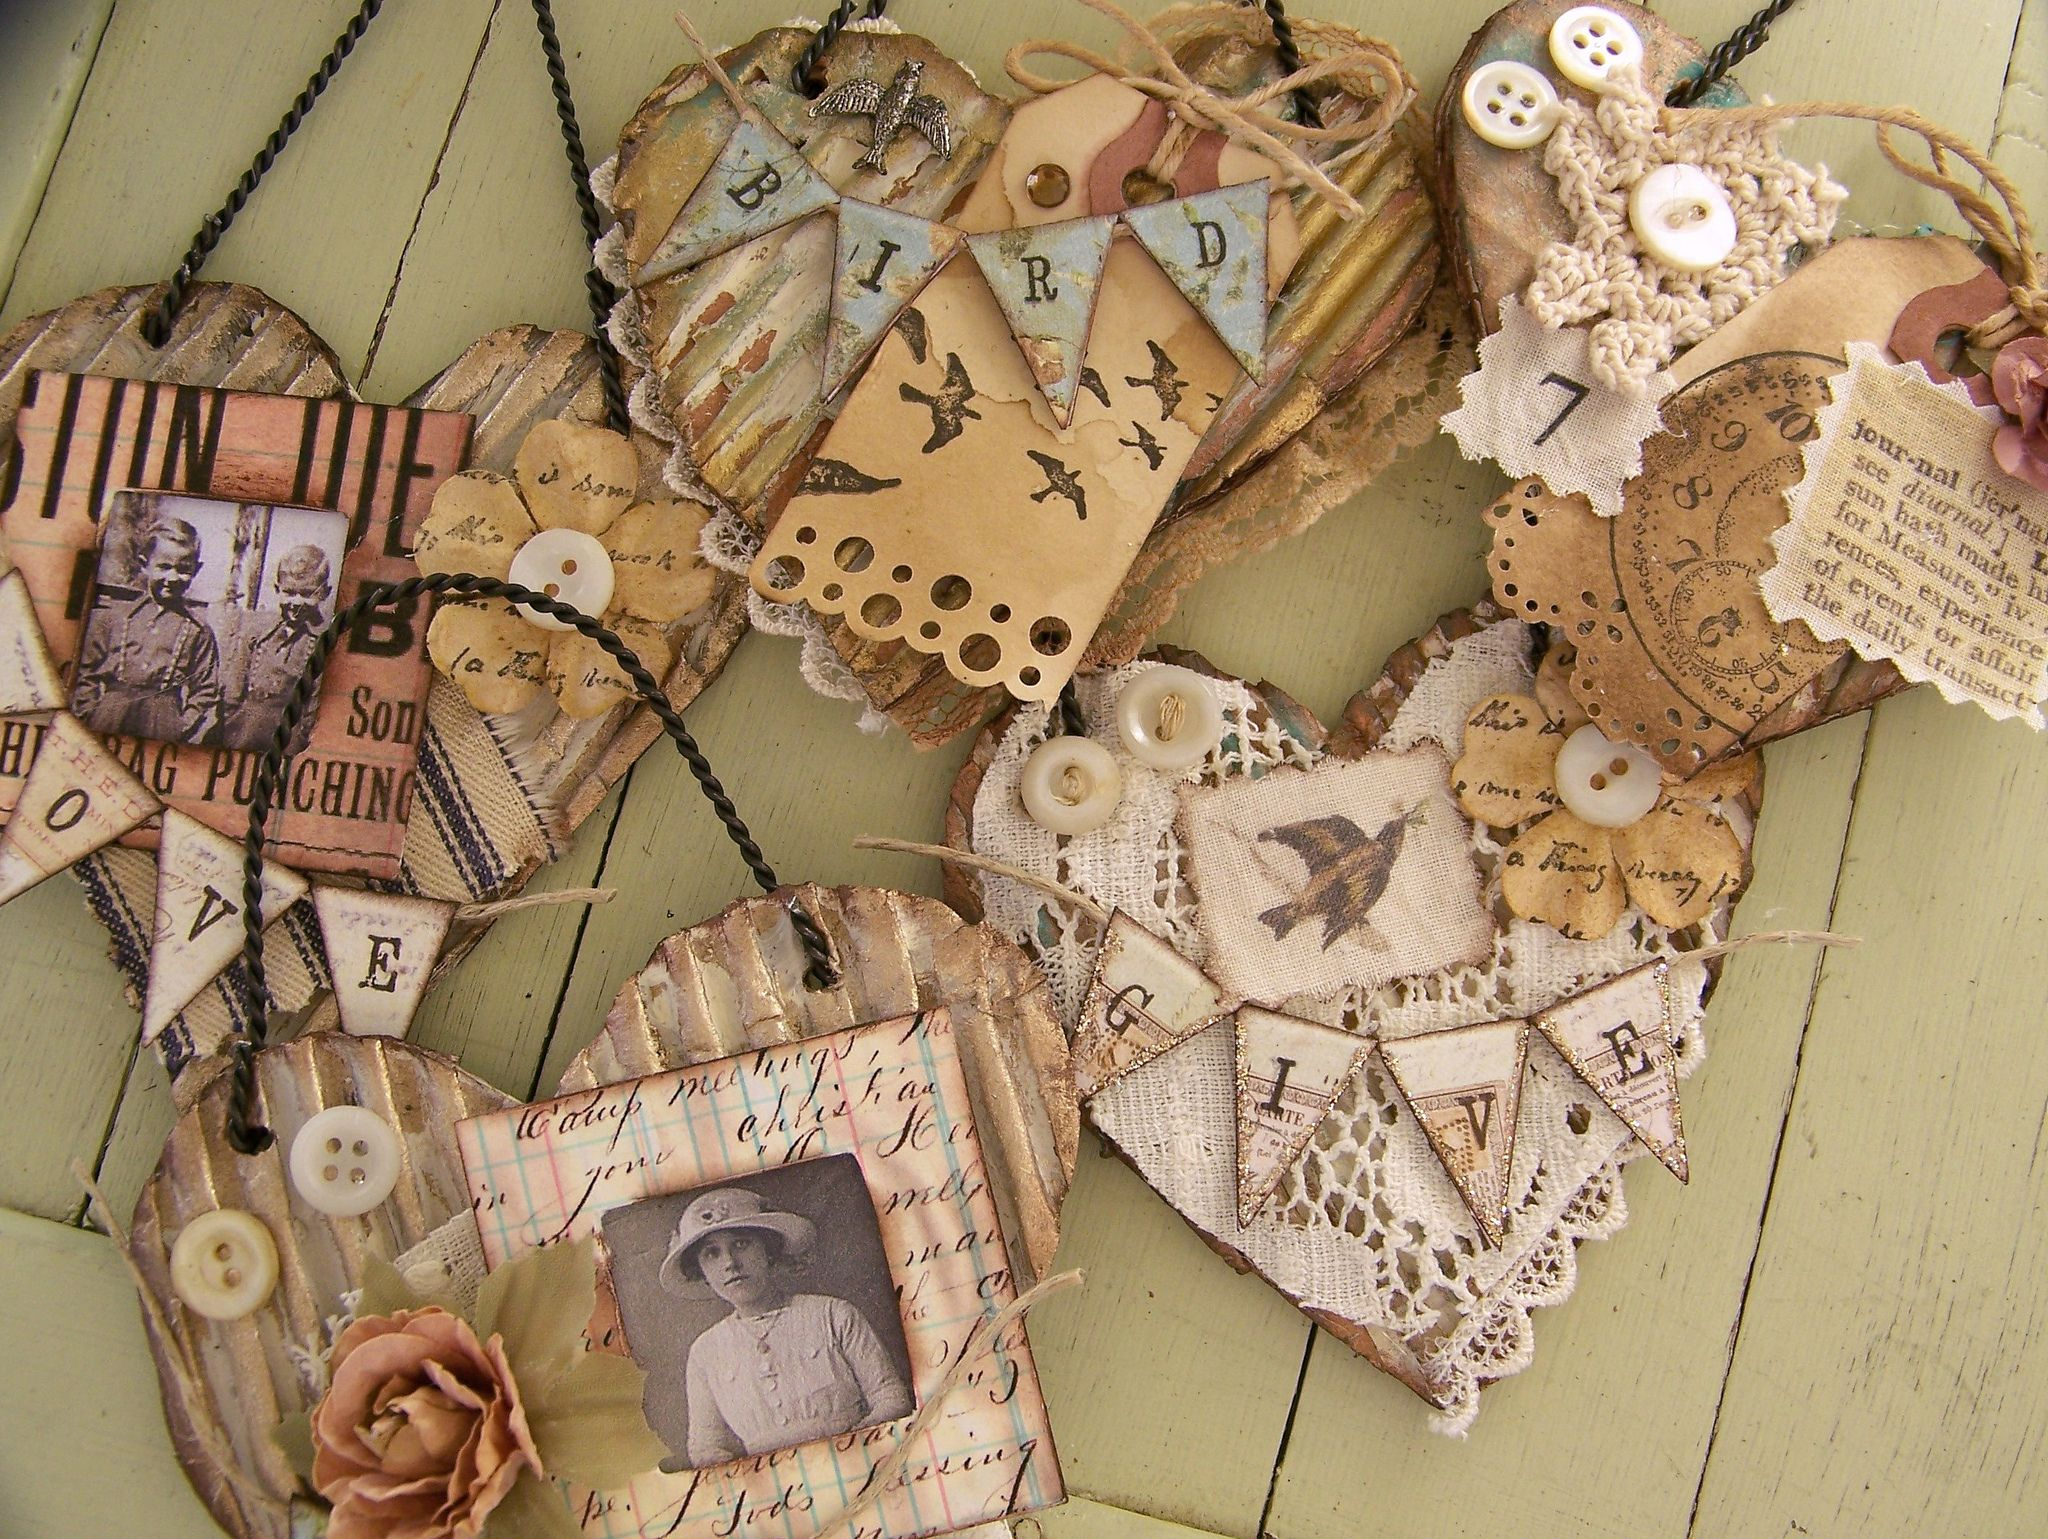 Vintage Style Heart Art Collages | by QueenBe1